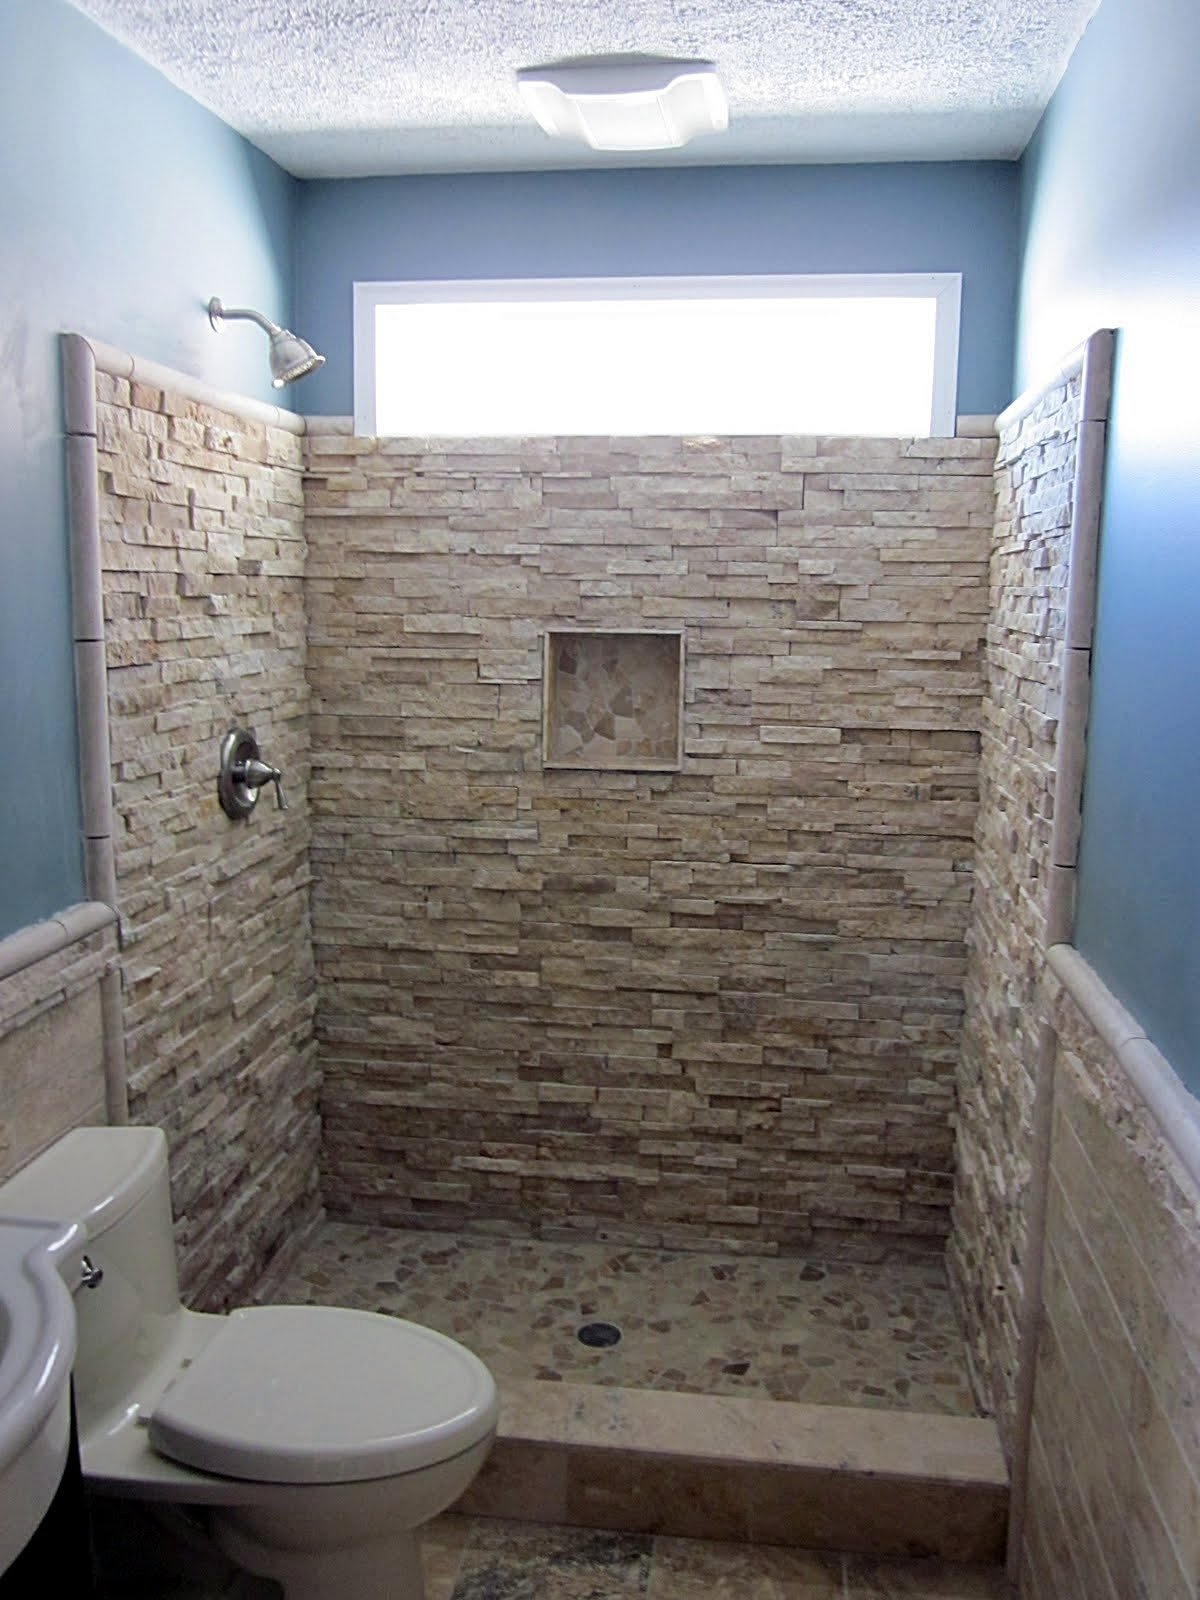 10 Awesome Bathroom Tubs And Showers Ideas small bath tub shower trends popular 2014 youtube